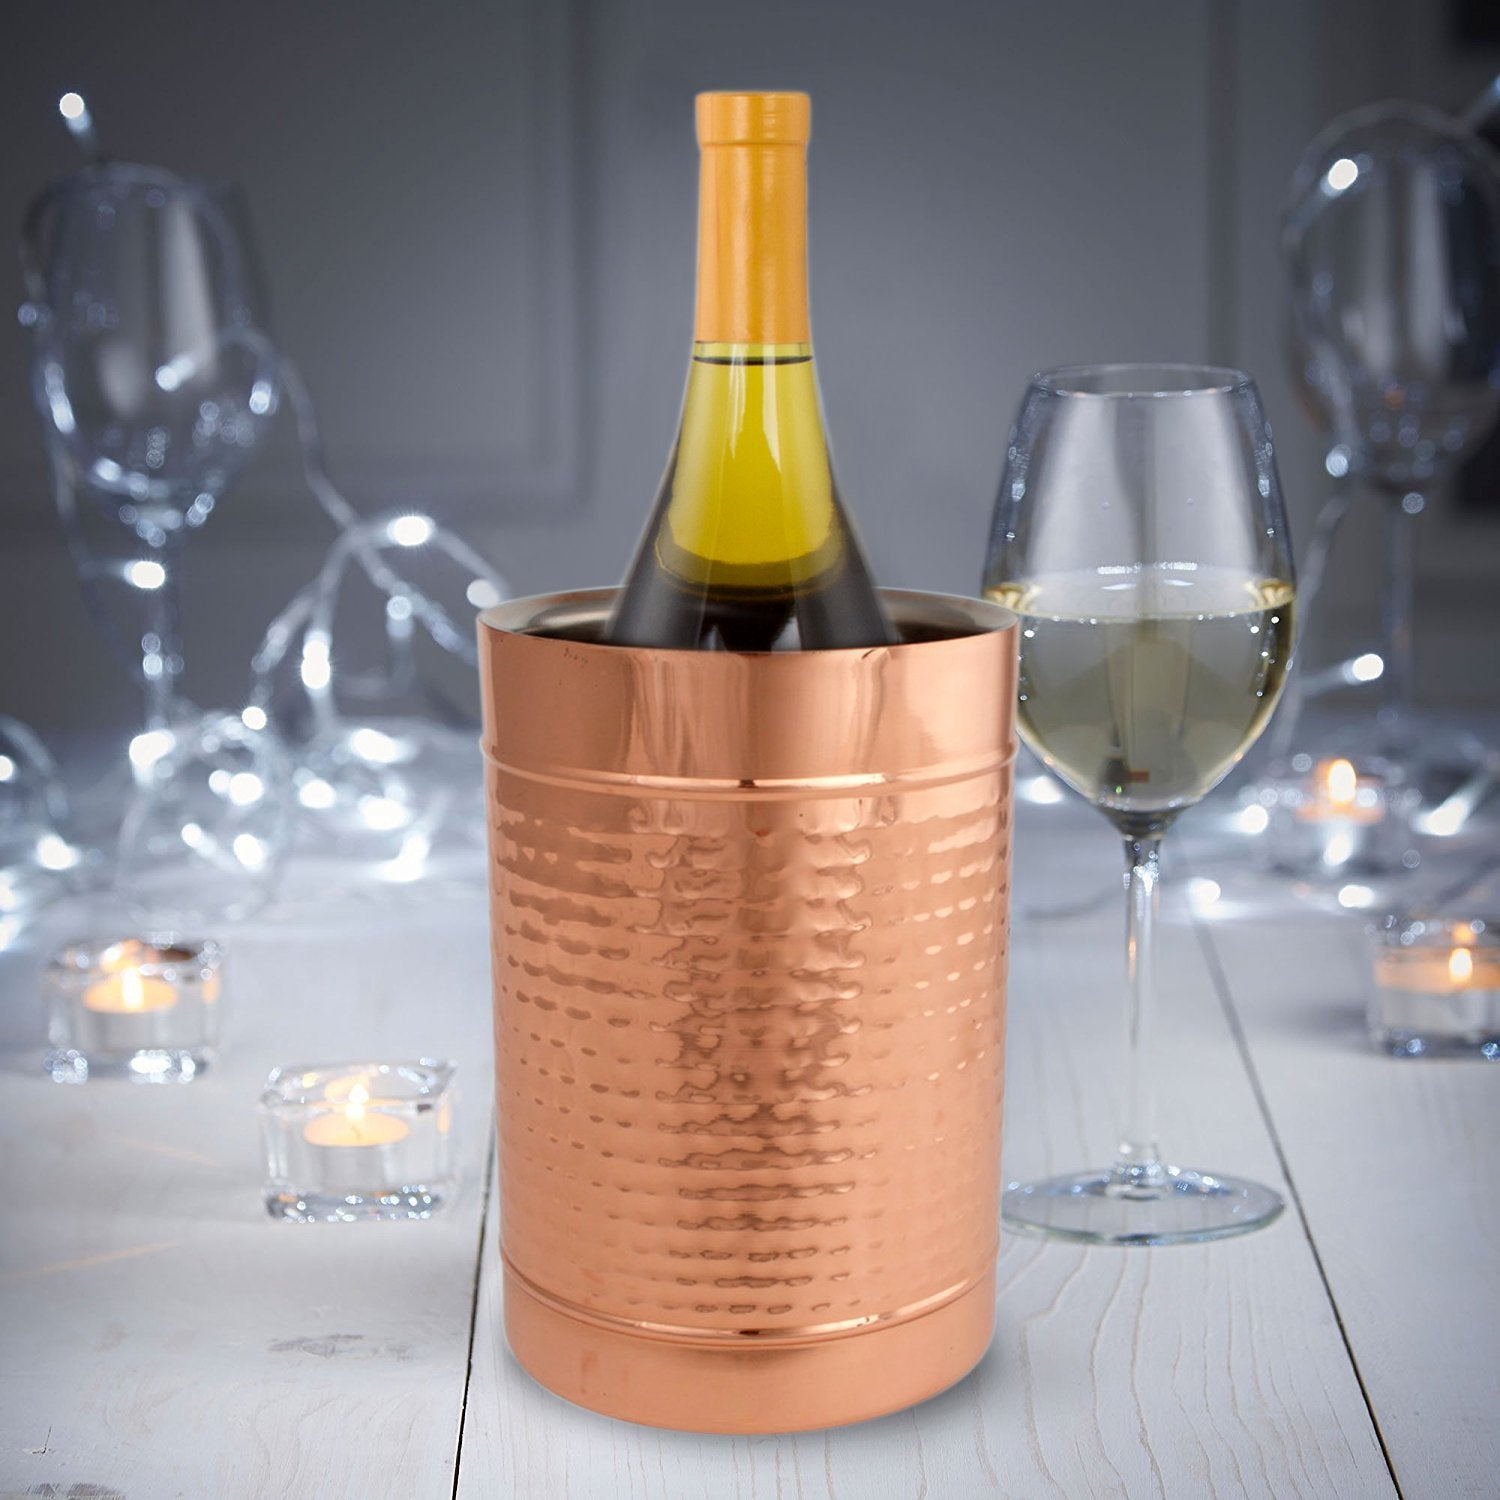 Copper Double Wall Wine Cooler – Insulated Cooler Ice Bucket – Champagne Bucket or Wine Chiller Bottle Cooler